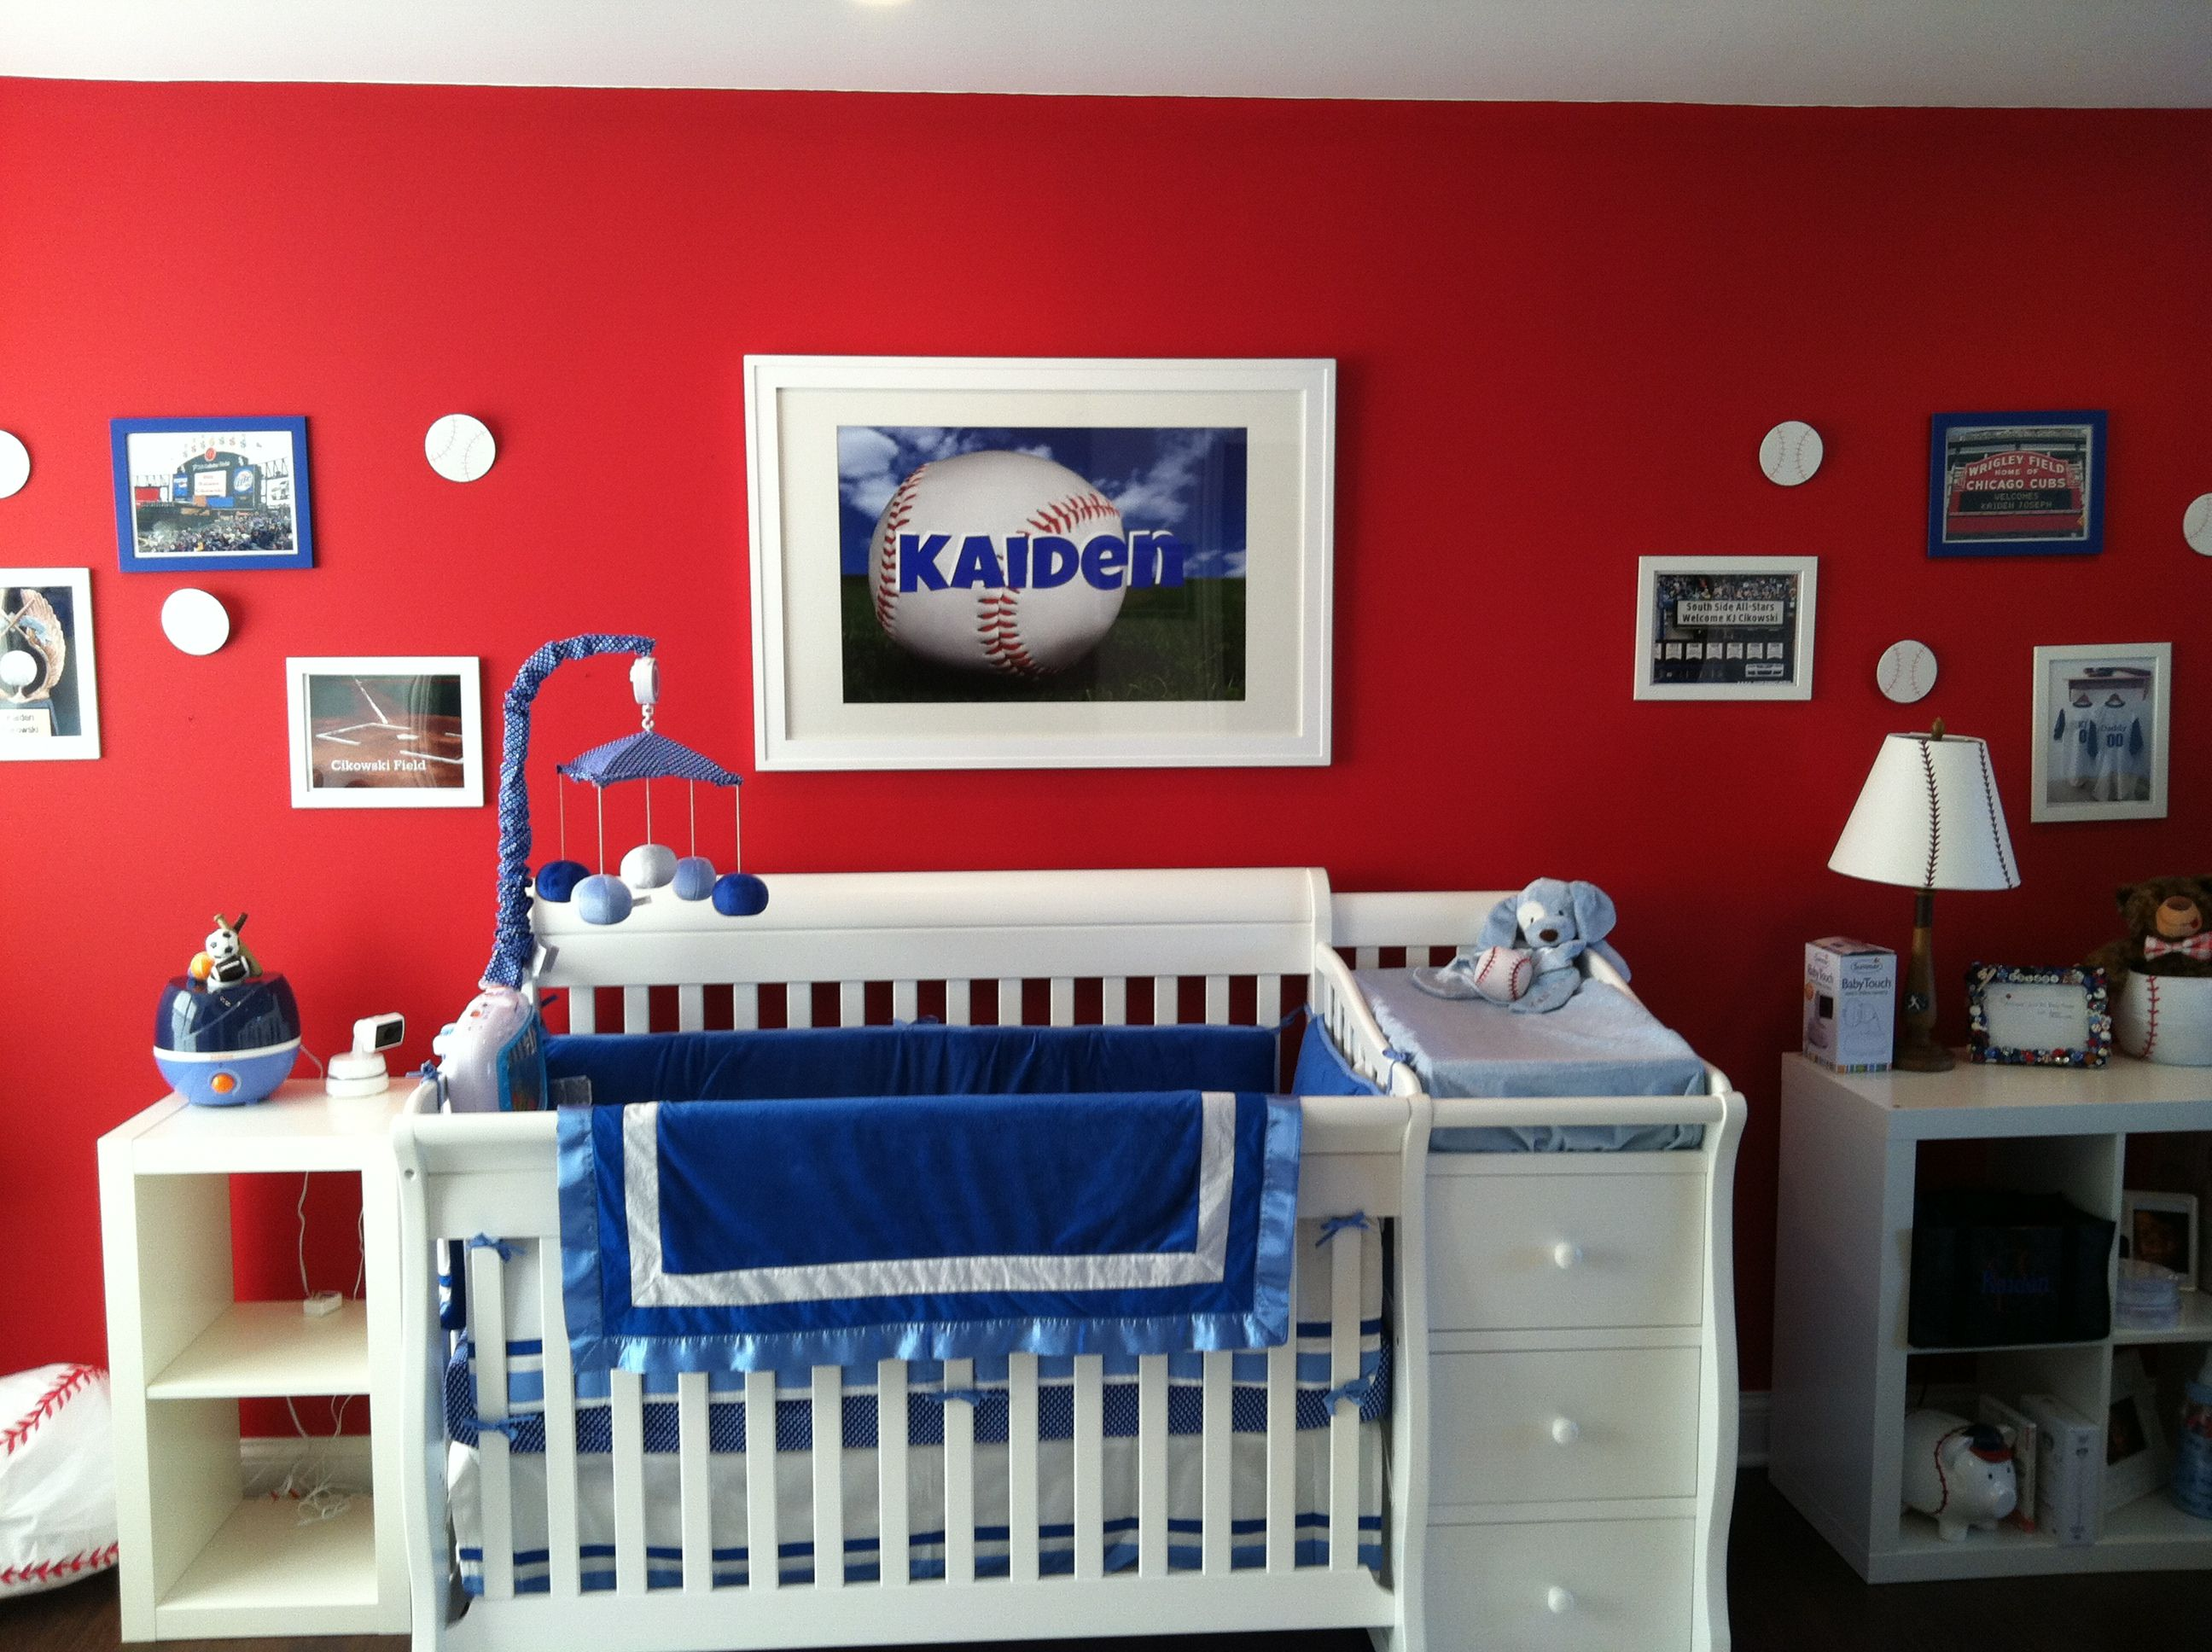 red and blue personalized baseball nursery for baby kaiden | for